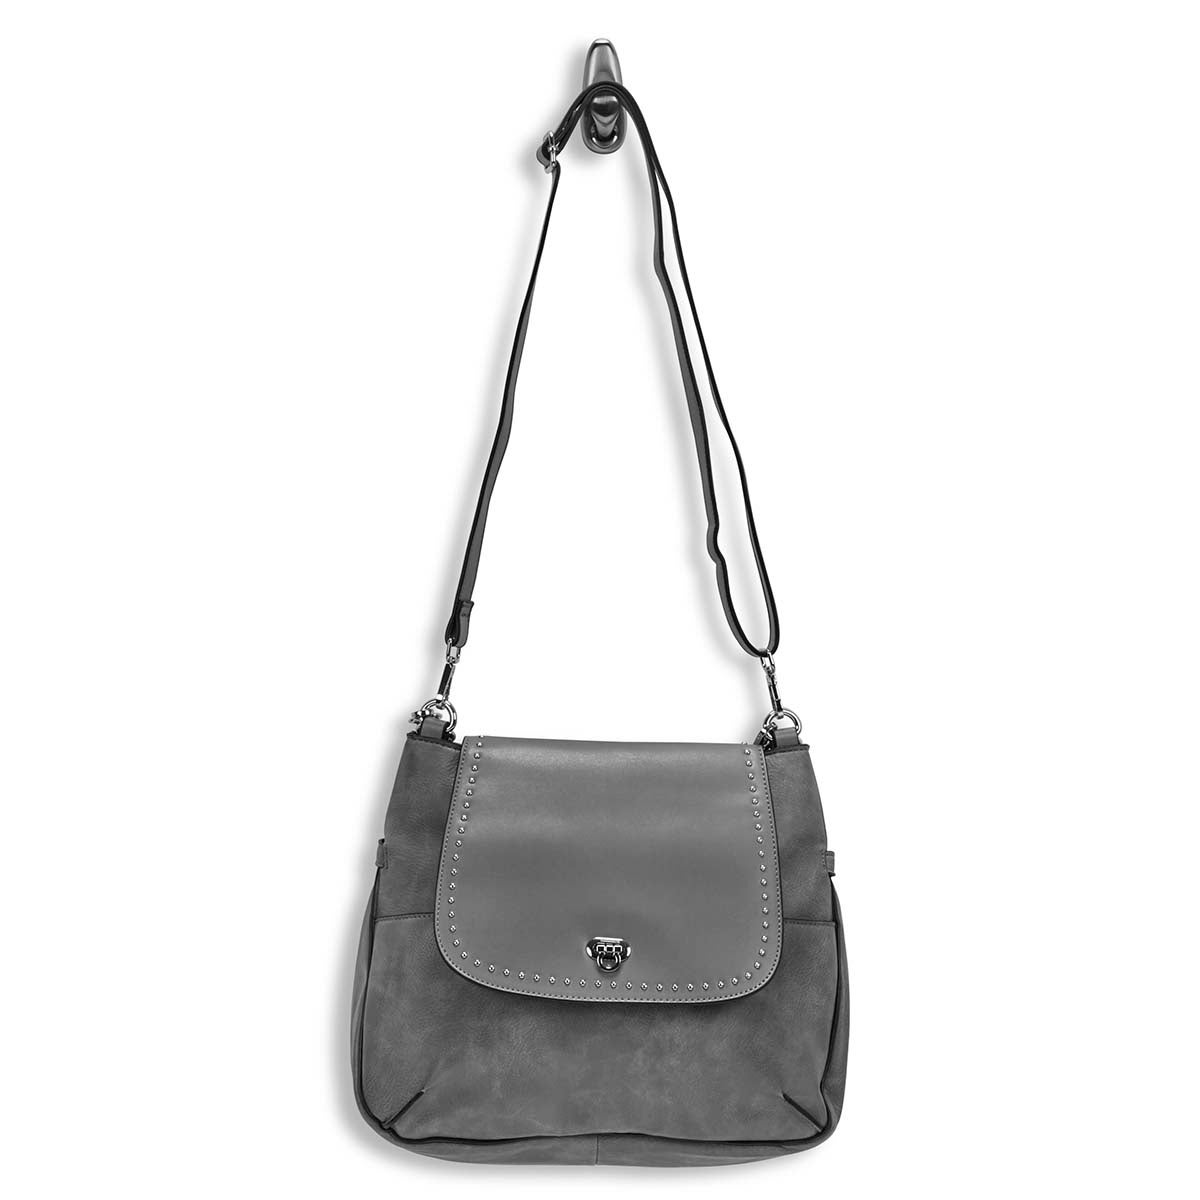 Lds Daisy gry hobo bag w/crossbody strap